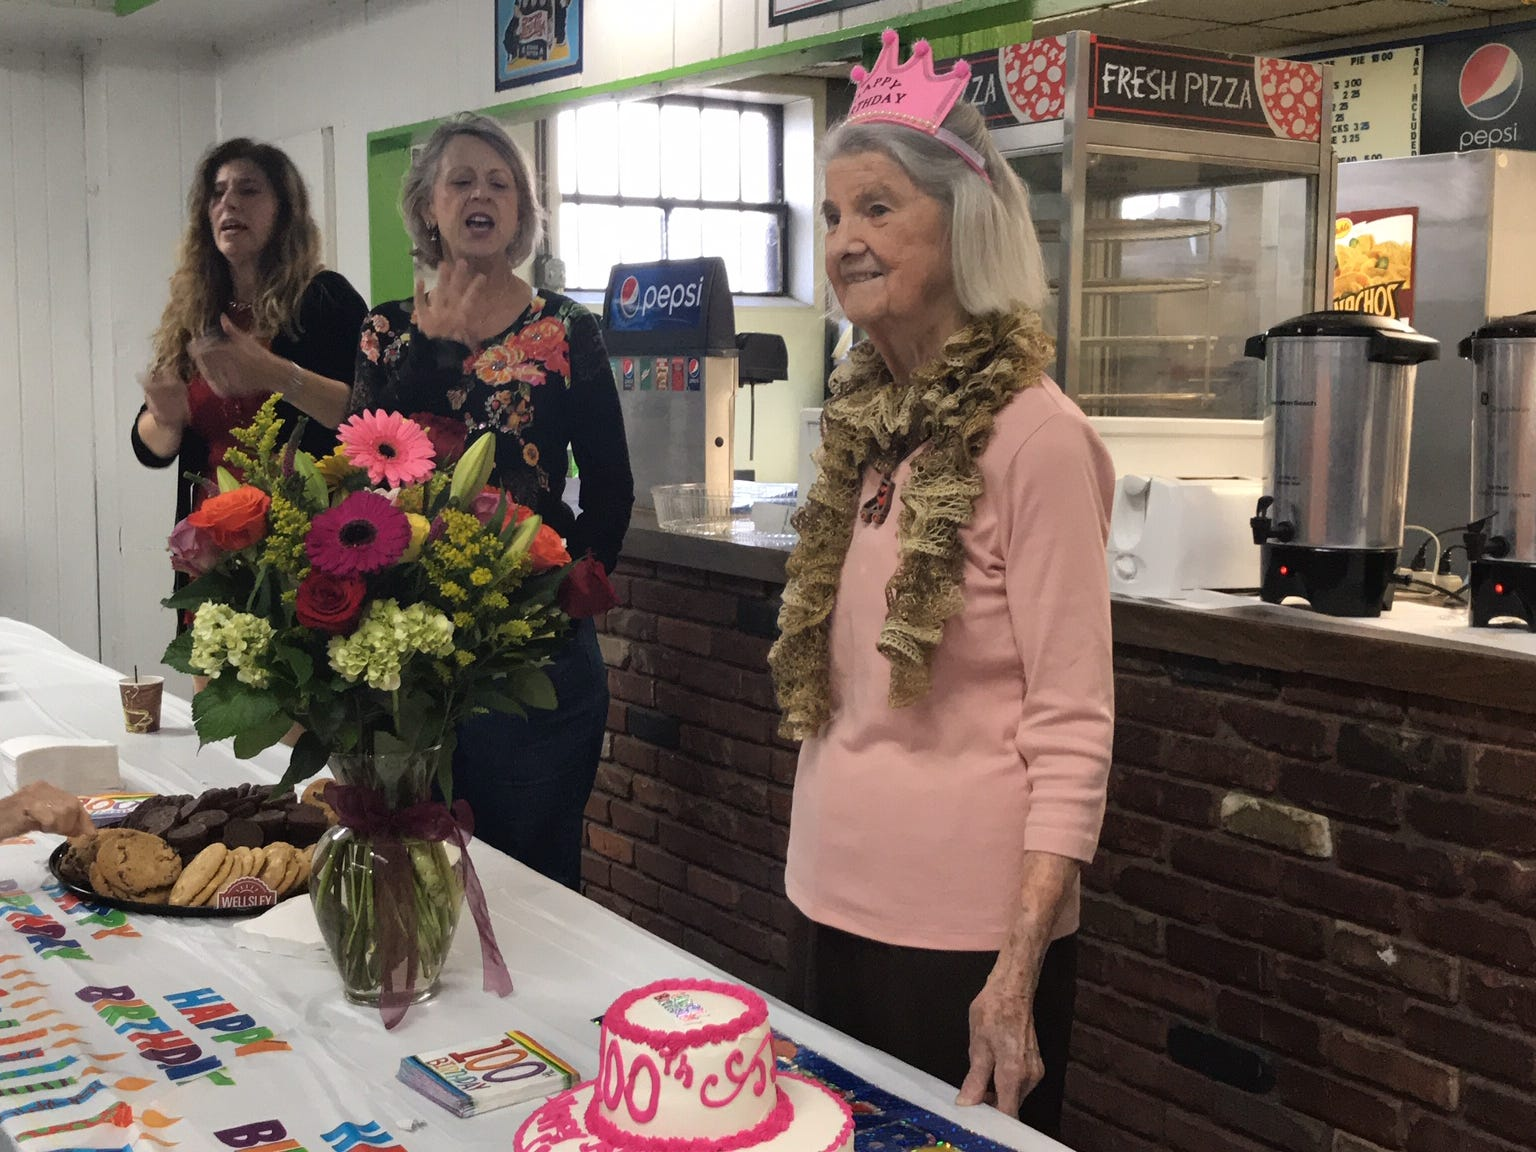 Carrie Callandrullo celebrated her 100th birthday Nov. 14 with her friends at the skating rink.At least twice a week, more than 20 seniors regularly gather at South Amboy Arenaand take to the rink for a couple hours of roller skating. They range in age from 55 to 100.